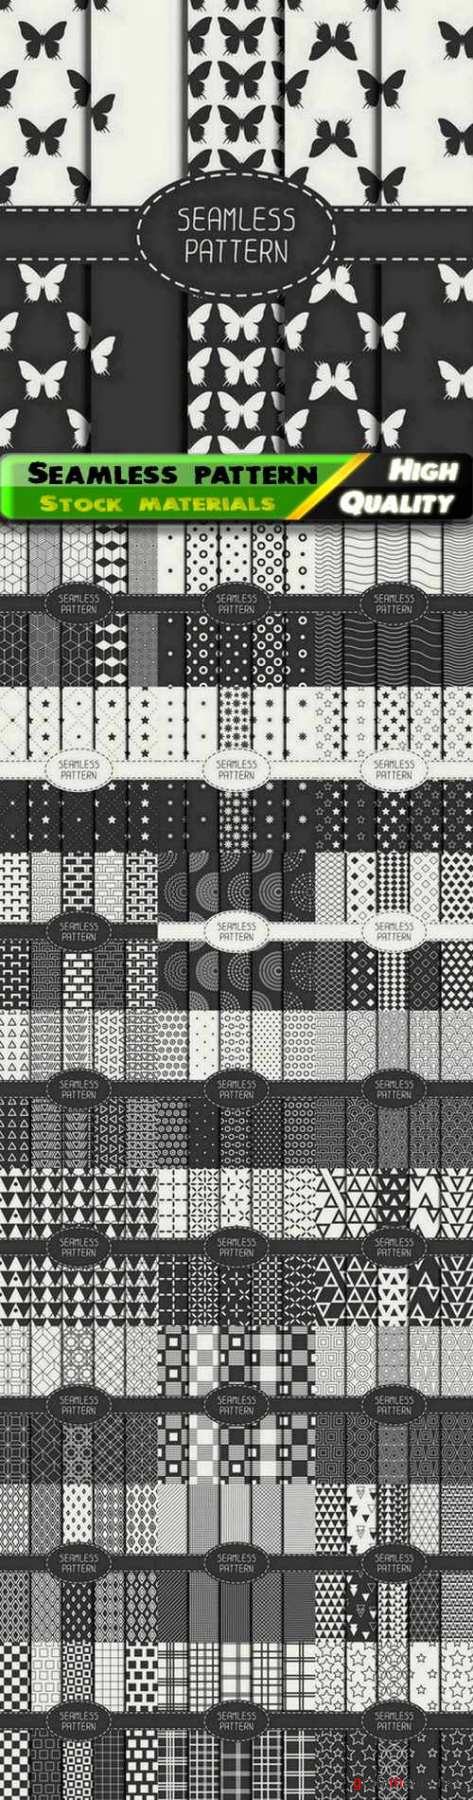 Black and white seamless pattern for wallpaper or textile design 25 Eps